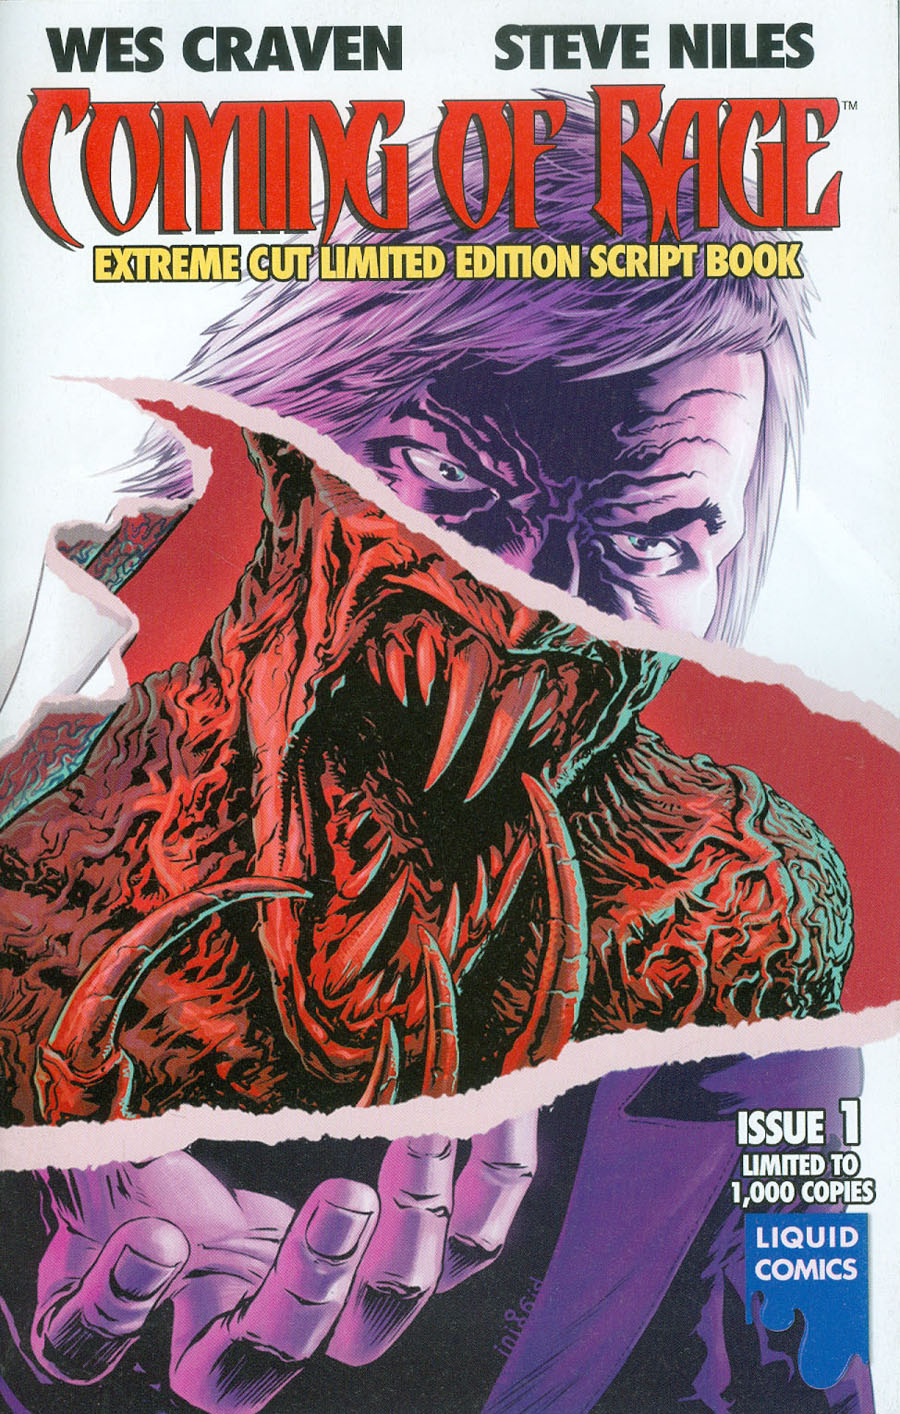 Wes Cravens Coming Of Rage #1 Cover E Extreme Cut Collectors Edition